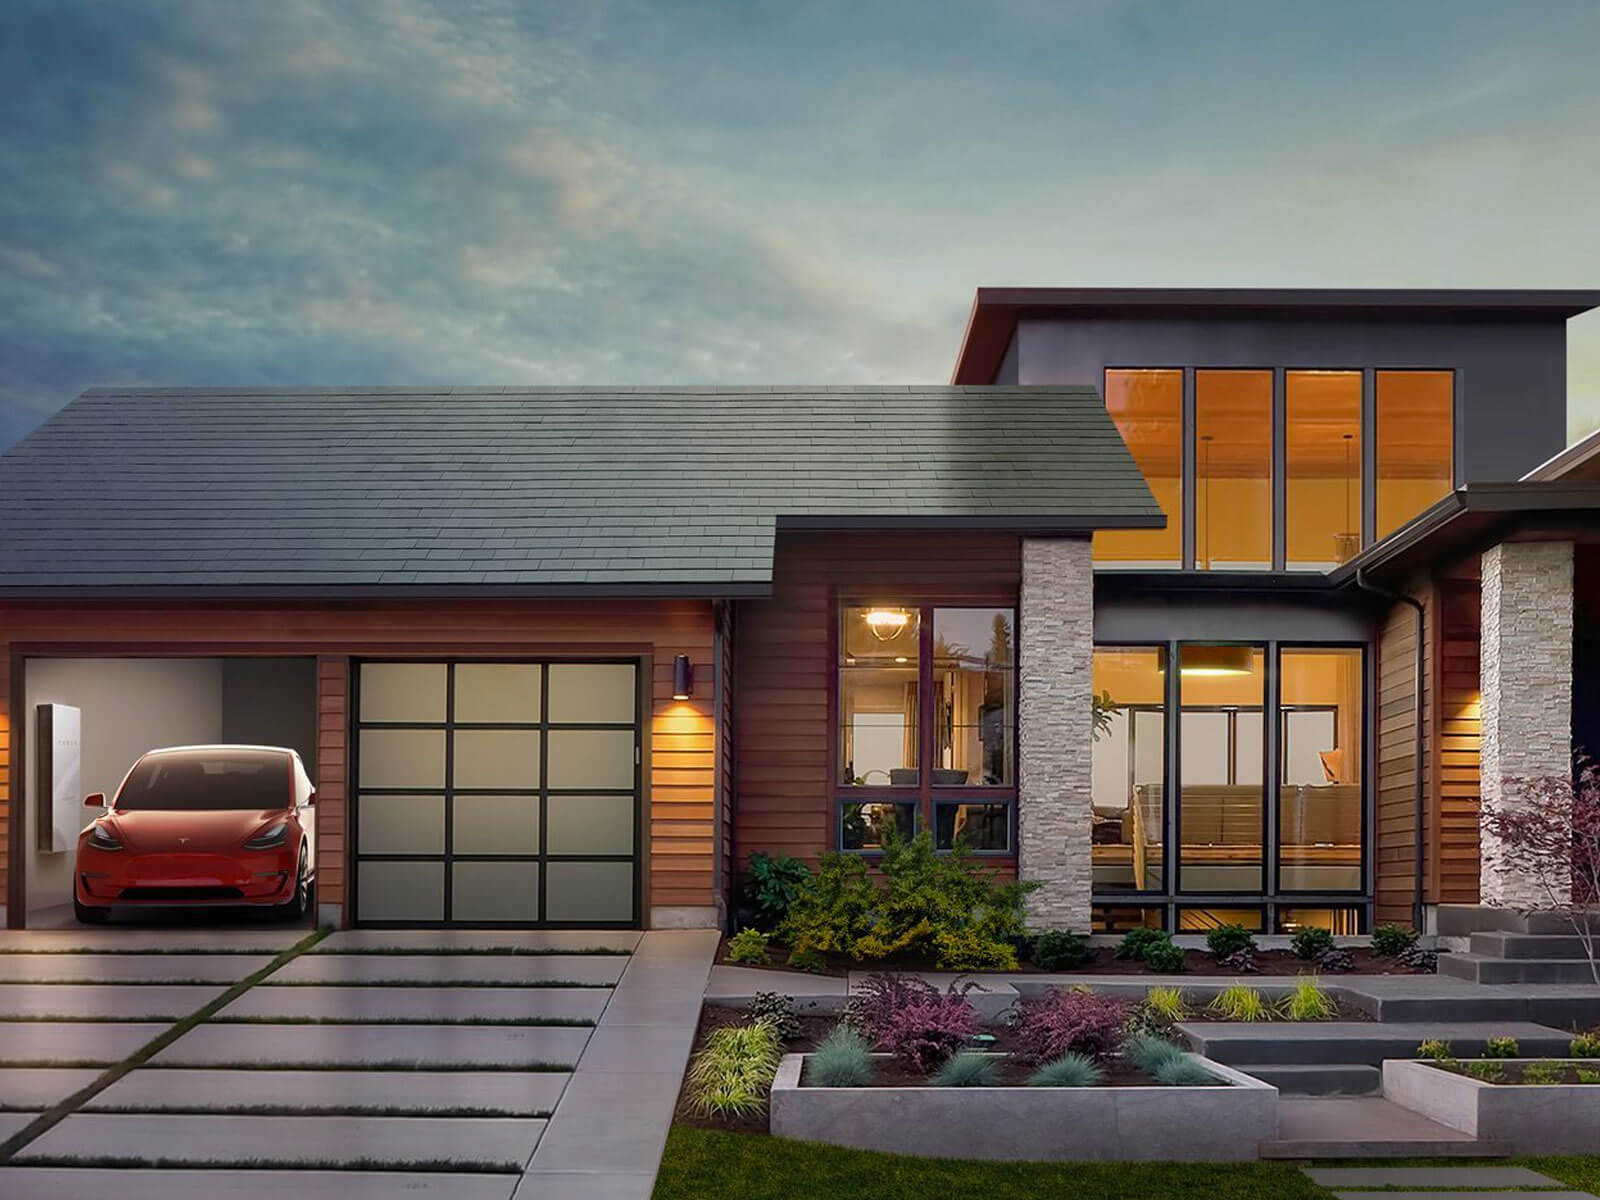 Tesla Model 3 charging next to Tesla PowerWall in a house with a Tesla Solar Roof